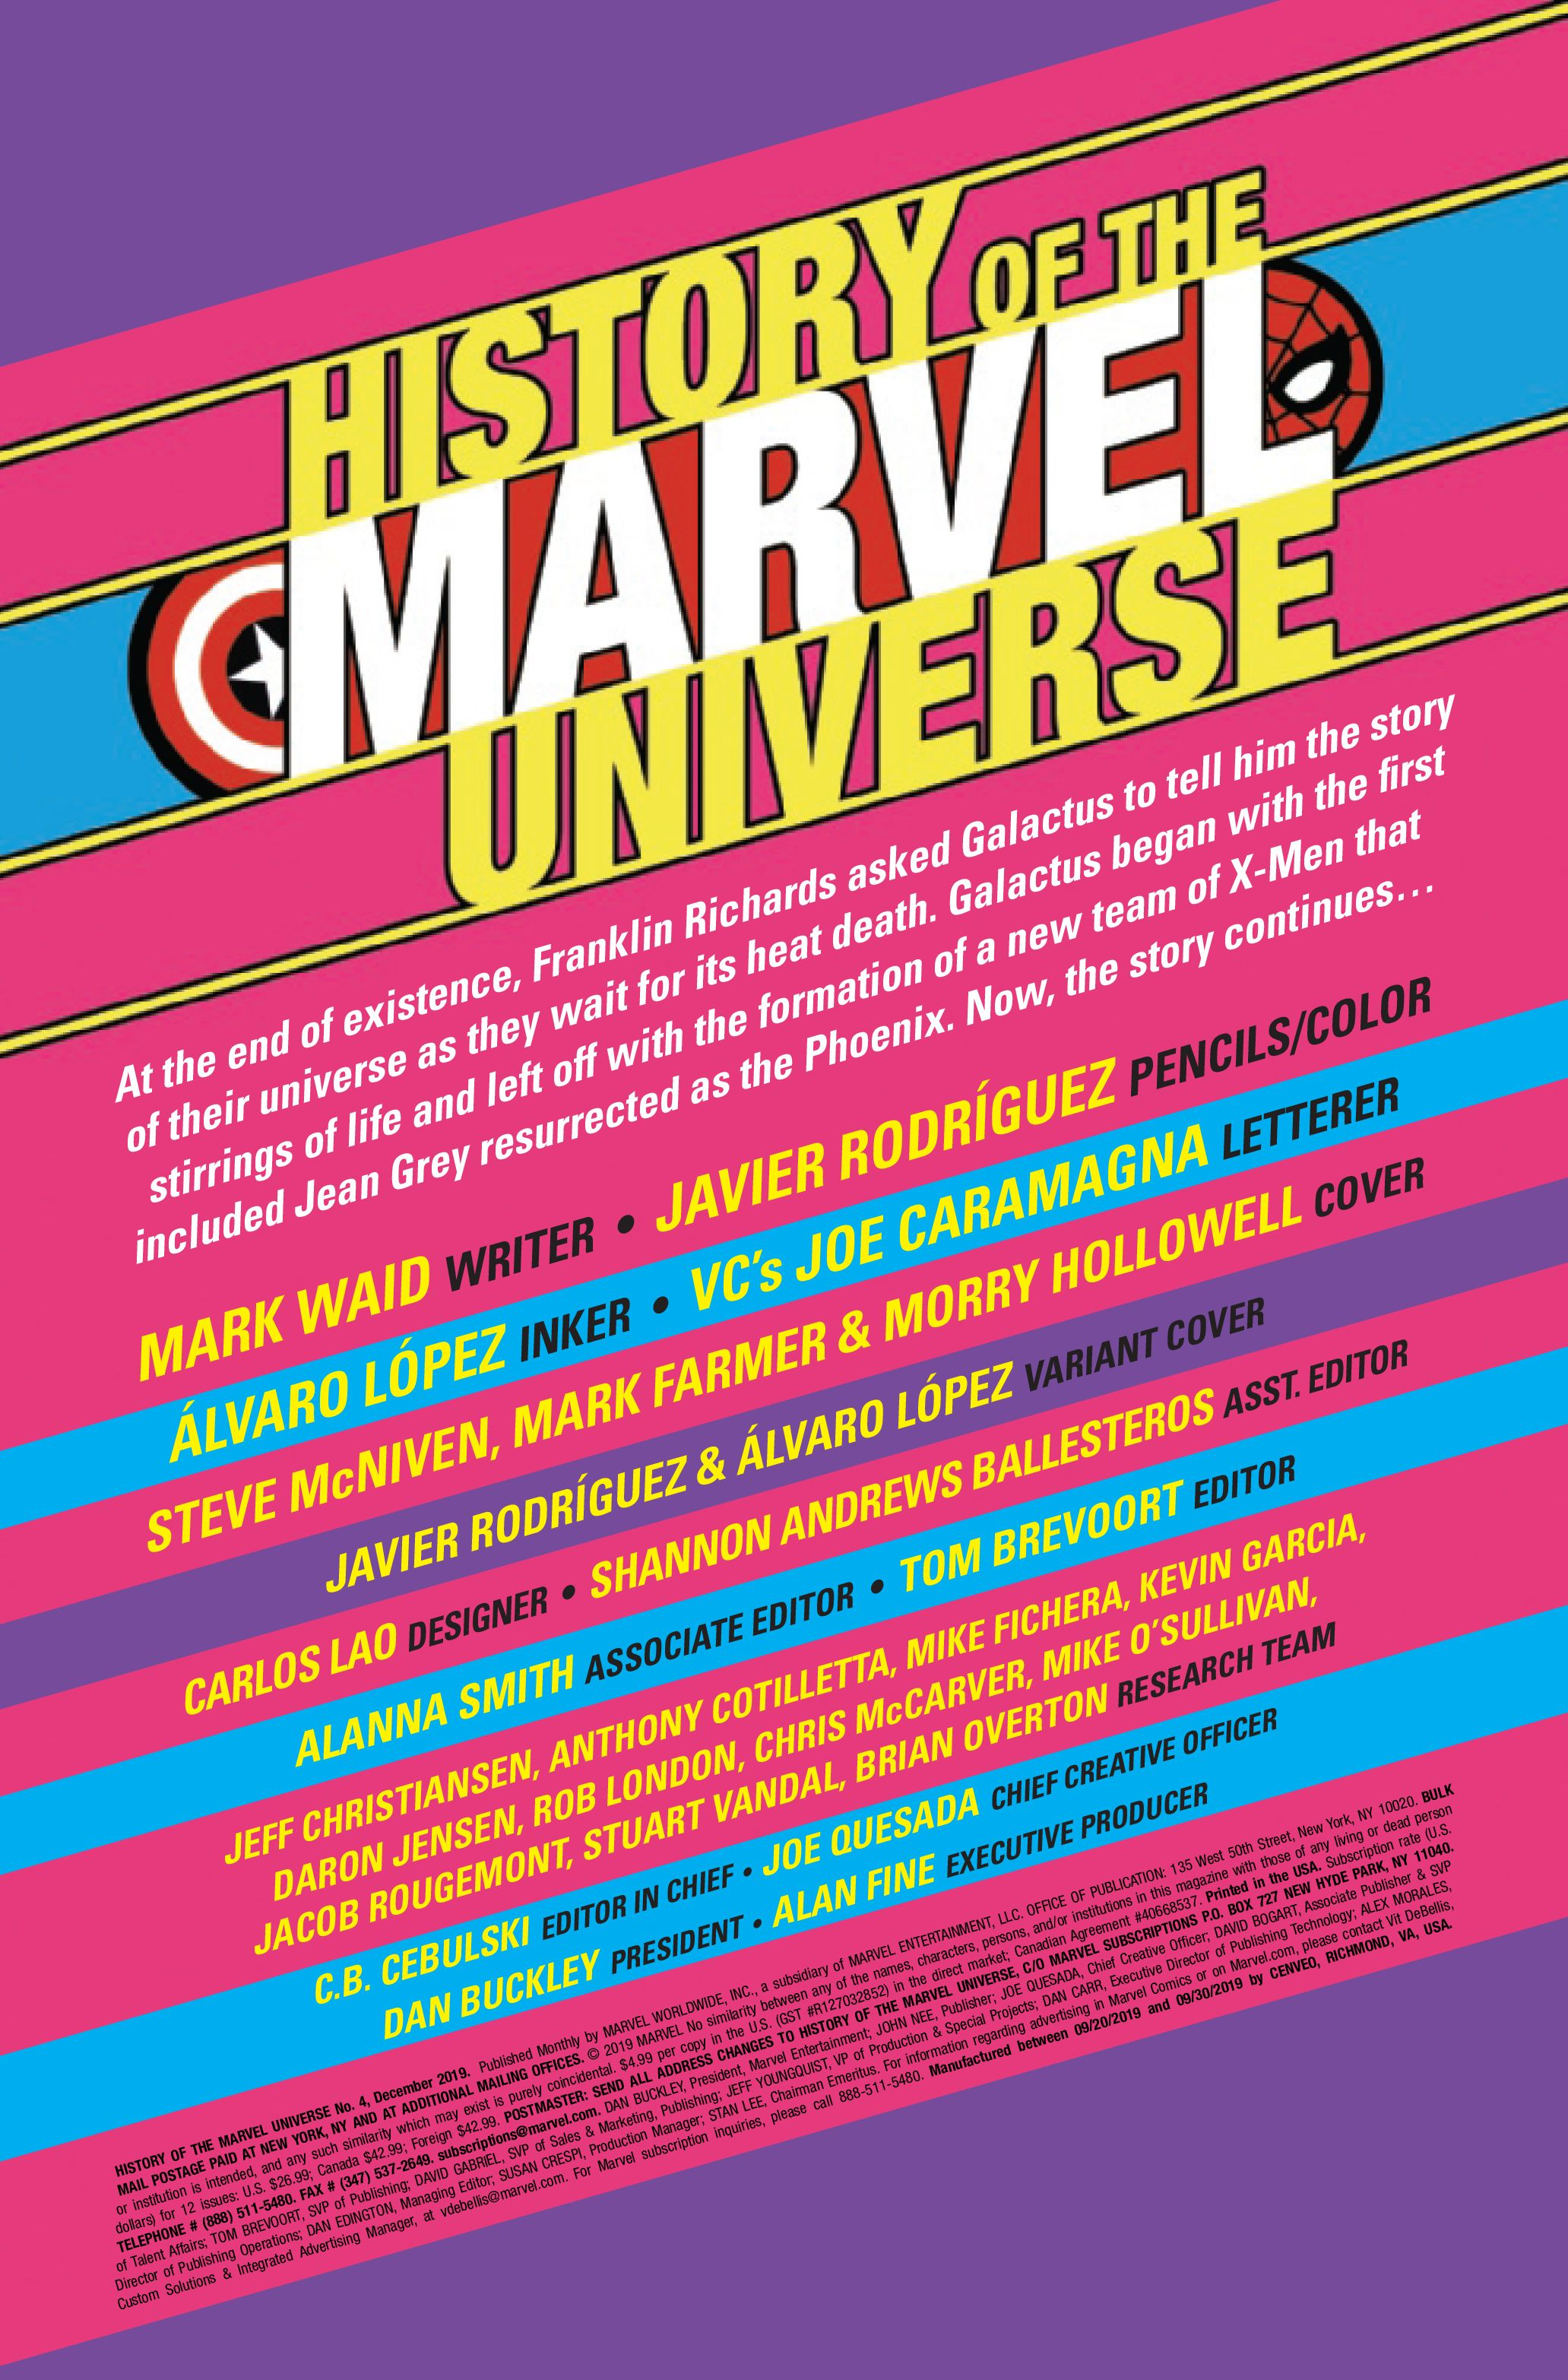 PREVIEW: History of the Marvel Universe #4 | CBR